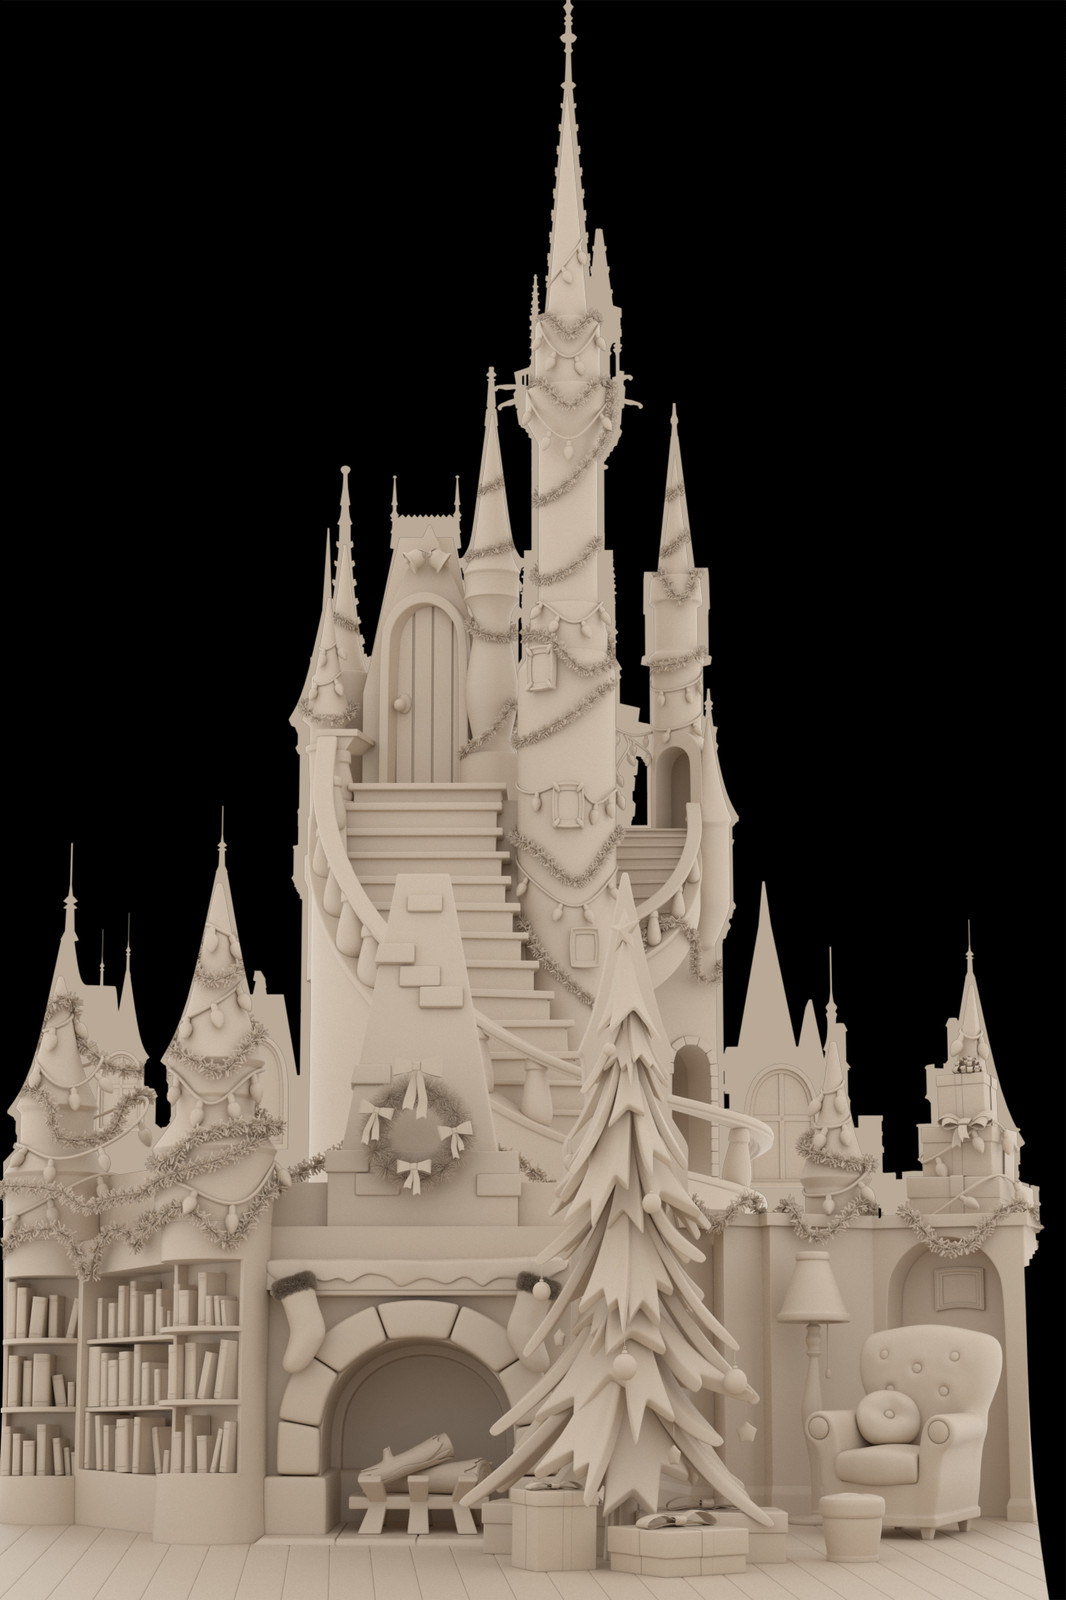 This was a quick pitch concept for the project, the interior of Mickey's house.